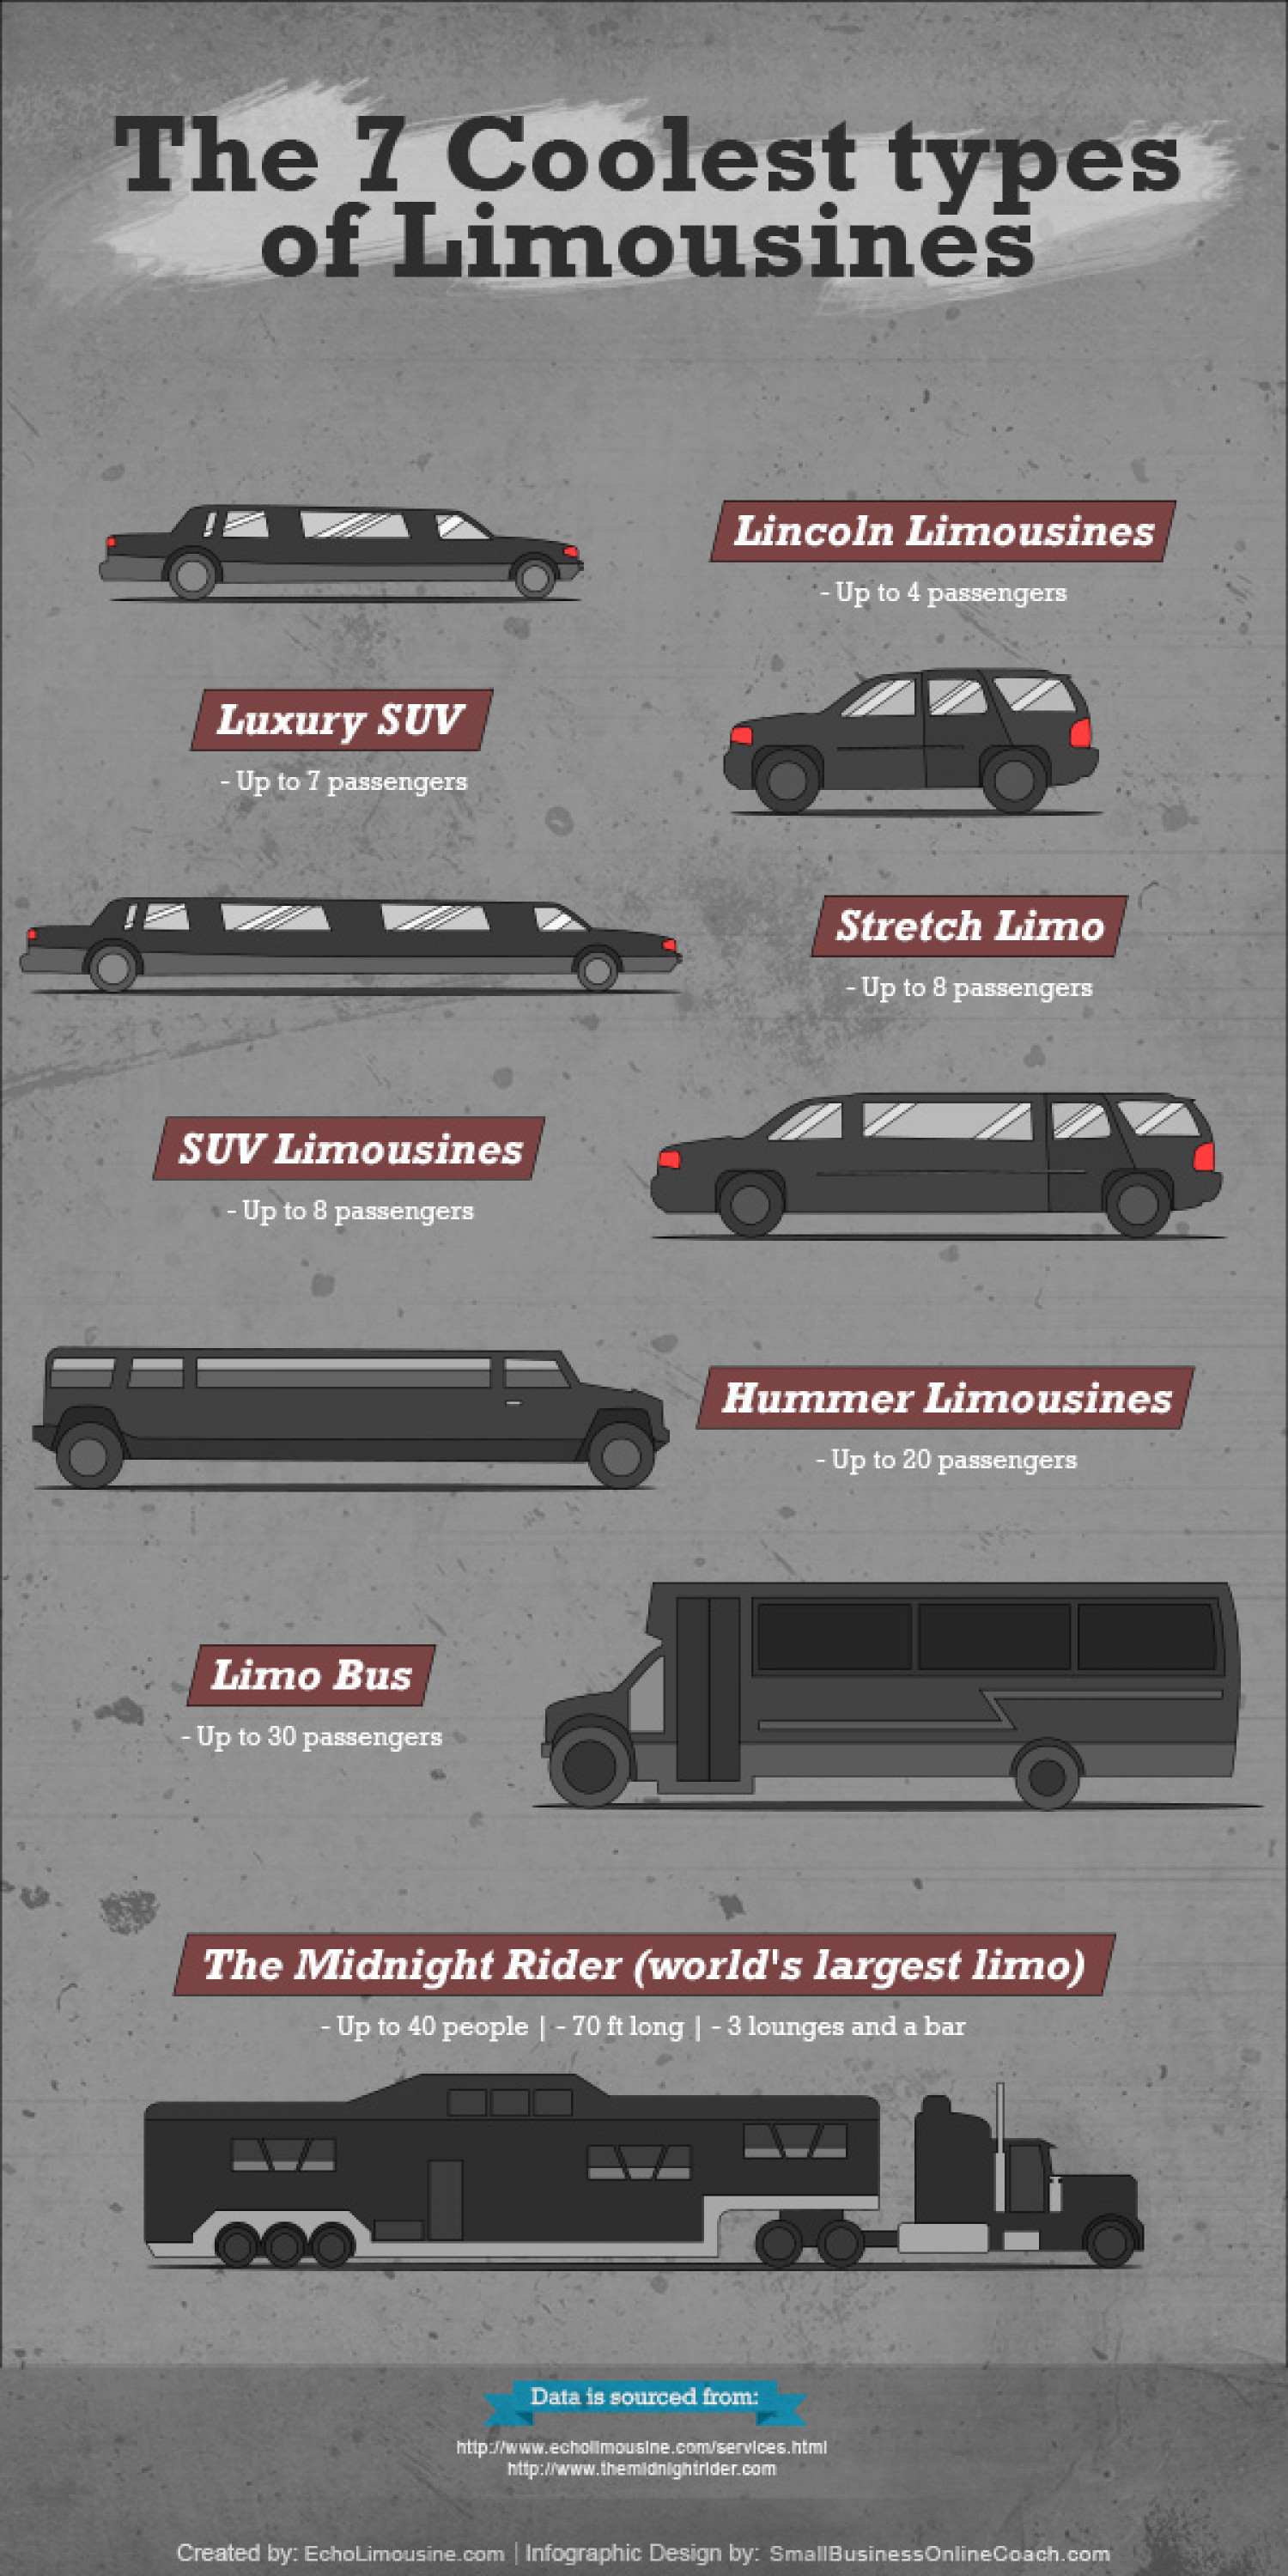 The 7 Coolest Types of Limousines Infographic